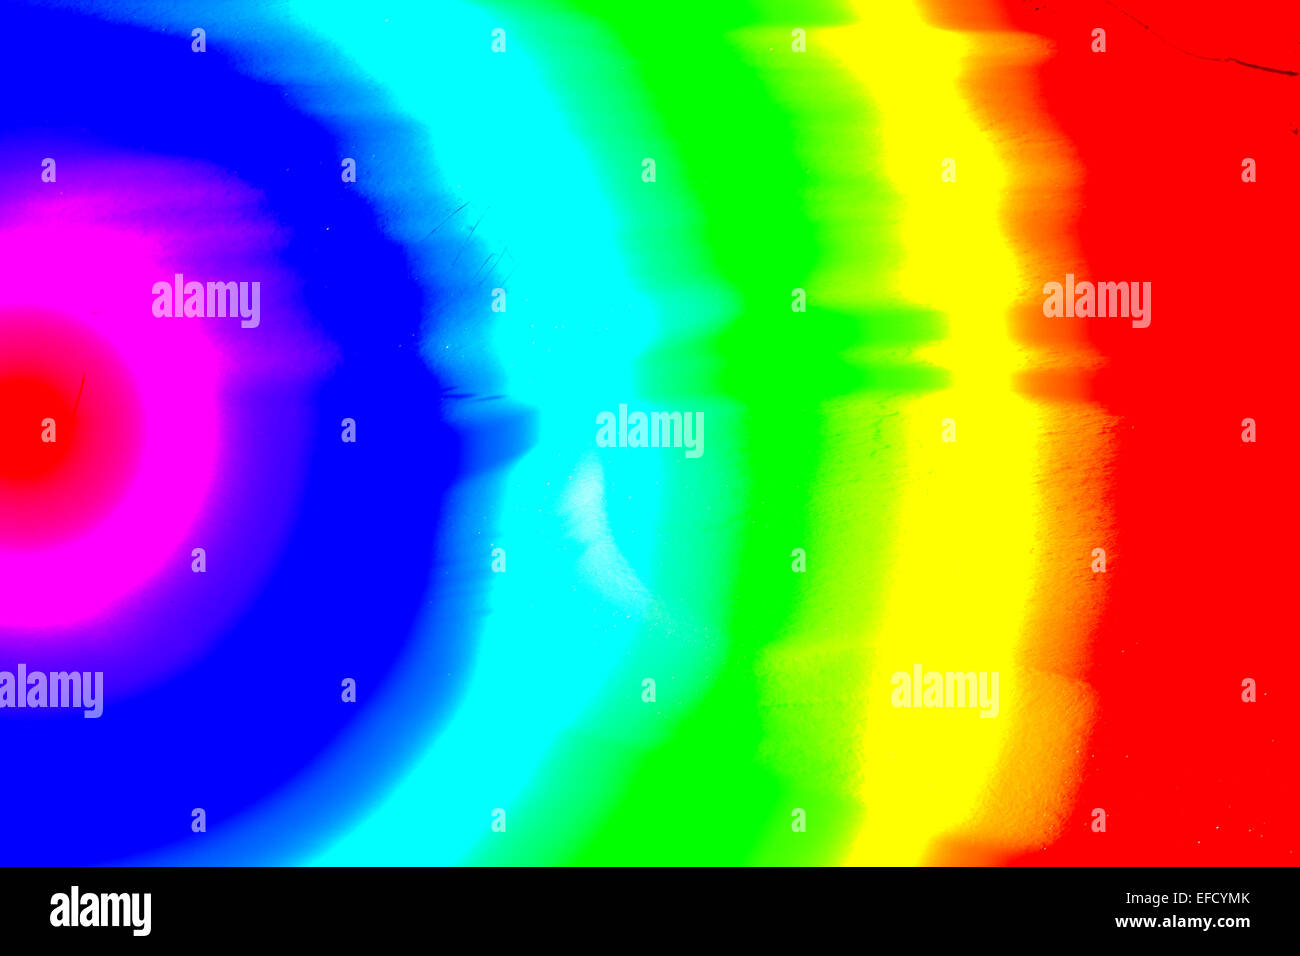 a weird sun,with moving color waves,having a unique color display,drawing  the eye in.the movement of sound , movement of light